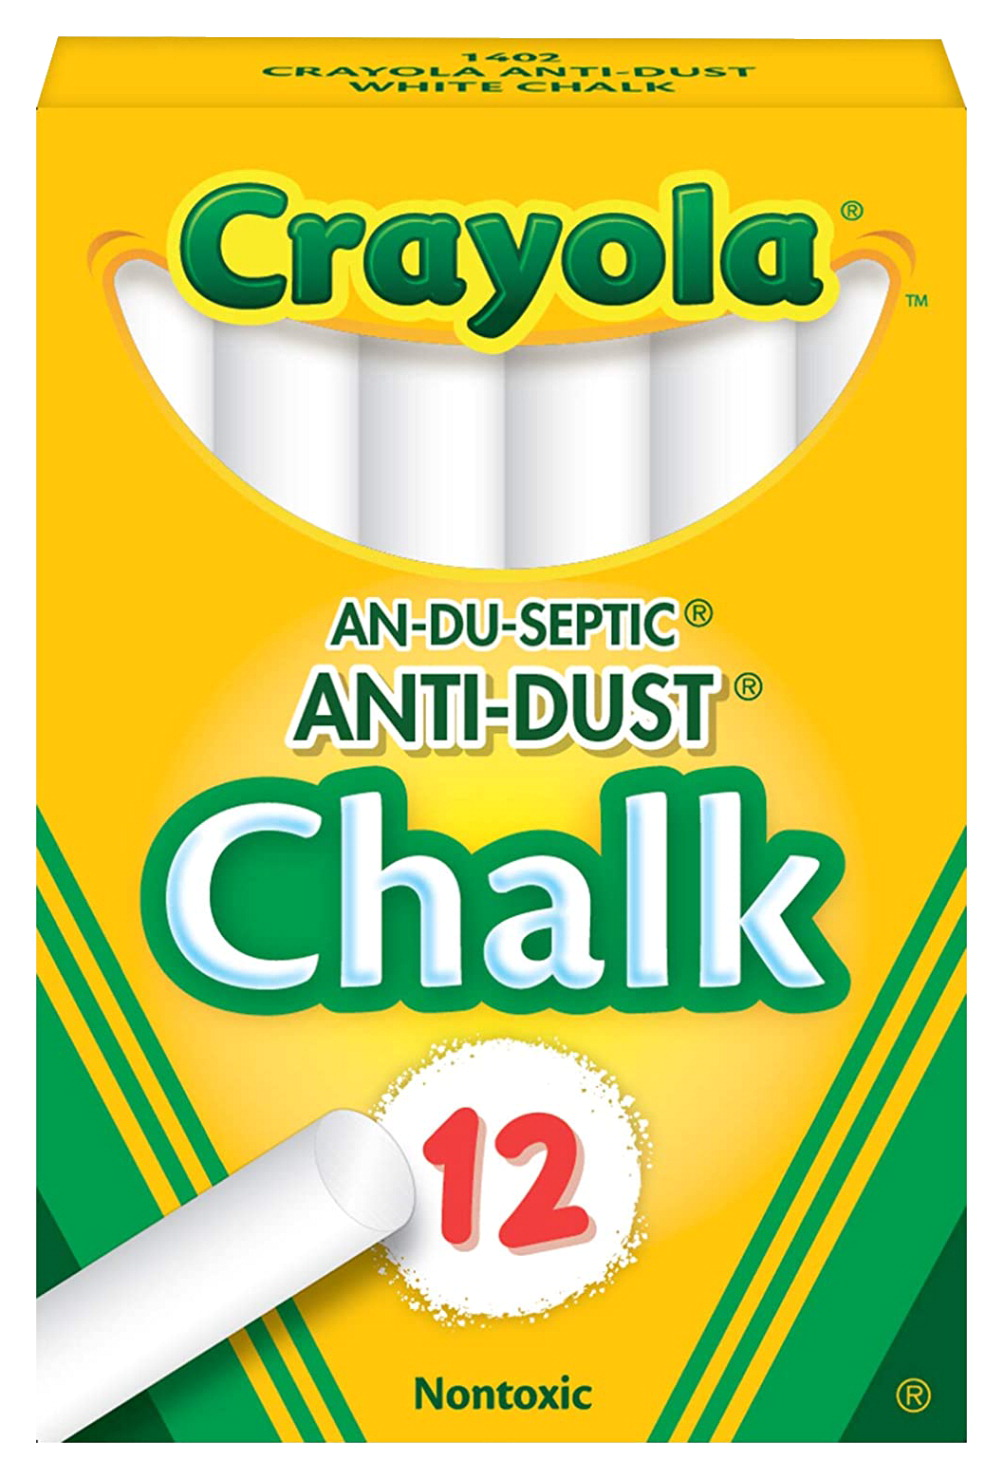 Crayola Chalkboard Chalk, White - SCHOOL SPECIALTY MARKETPLACE